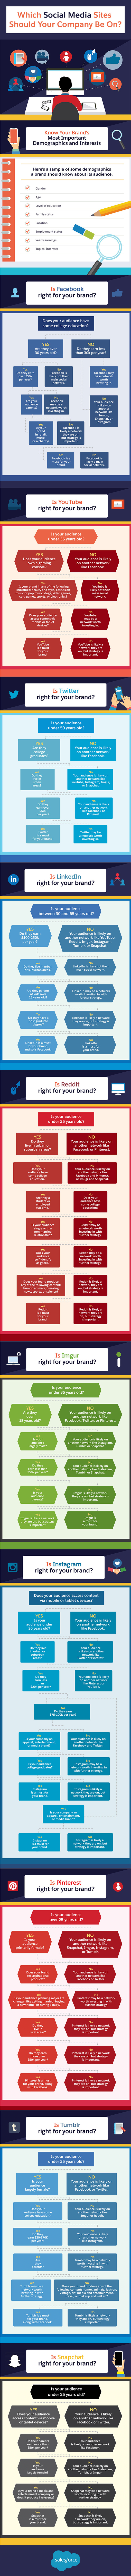 Which Social Media Sites Work for You These Flow Charts Will Tell You